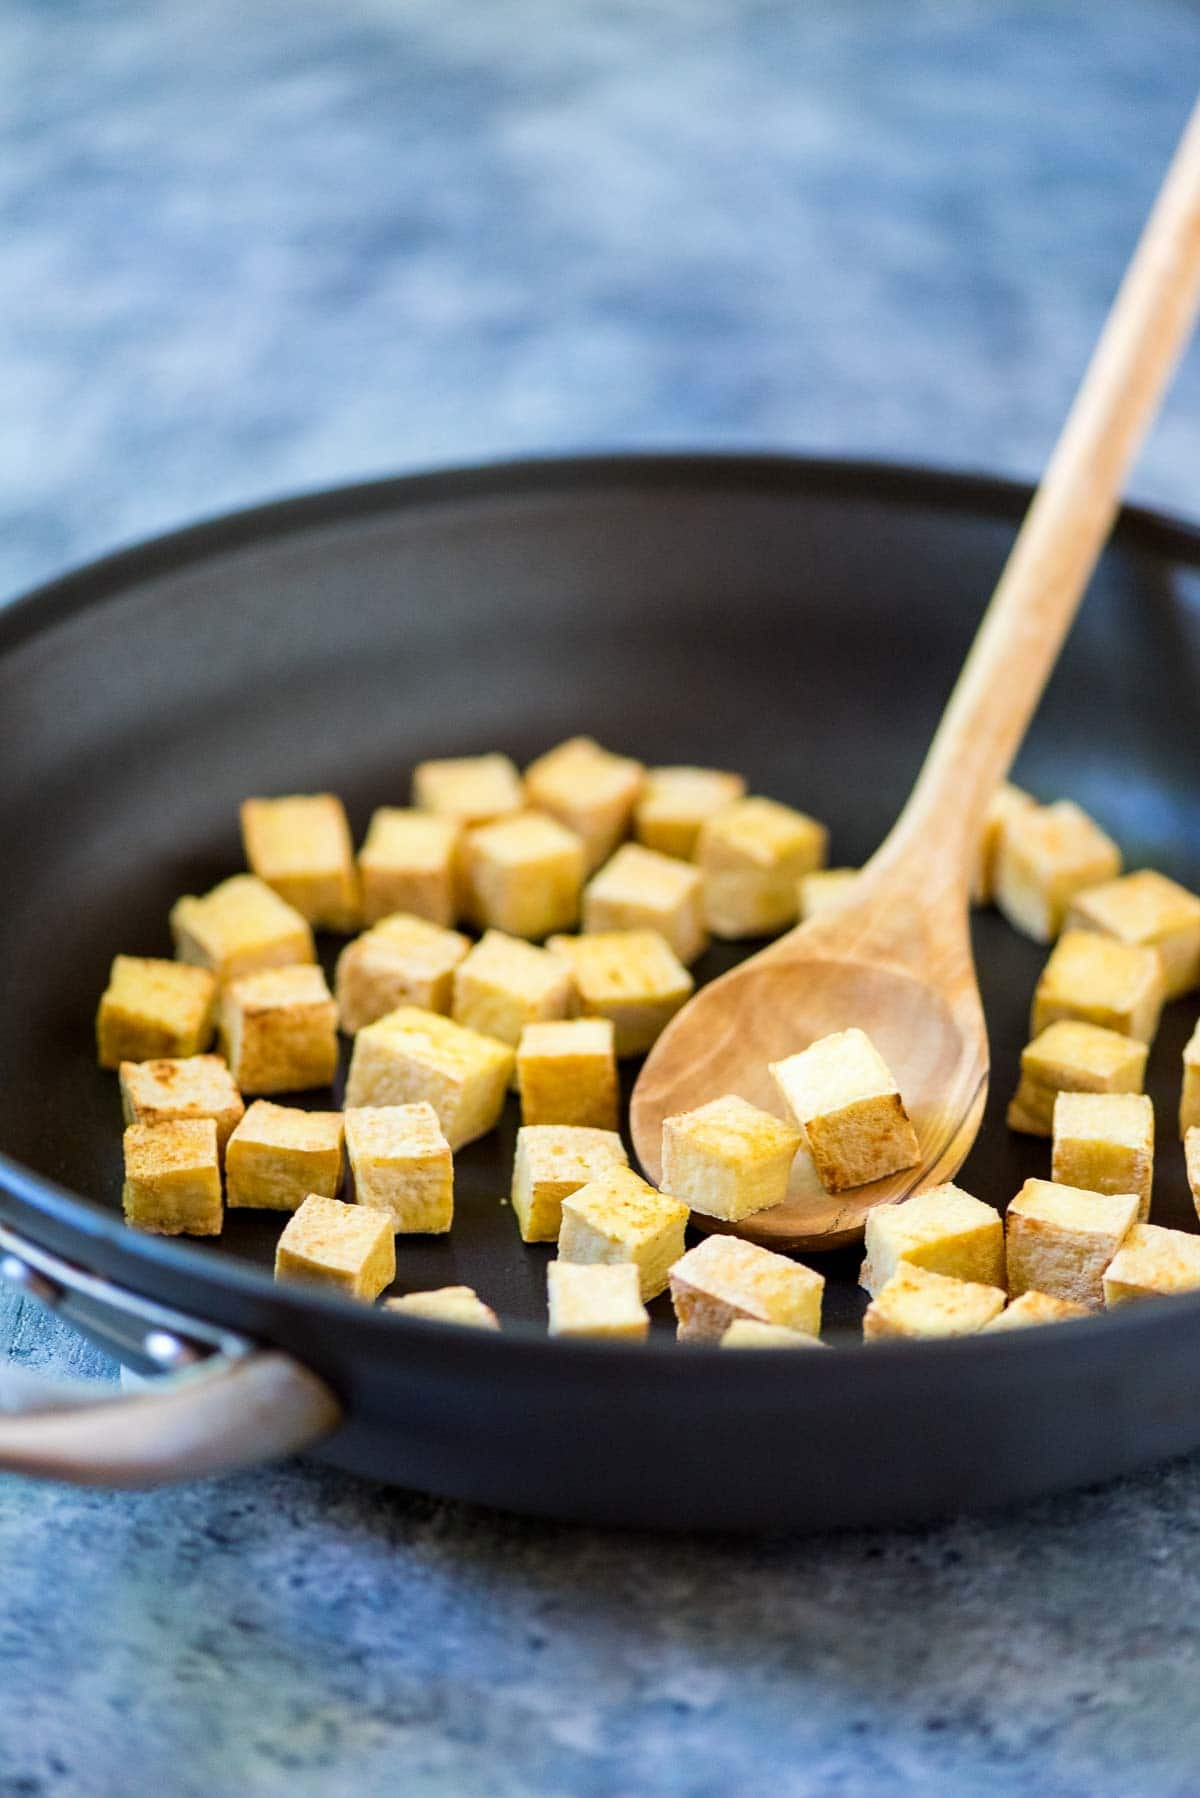 Crispy Tofu No Baking Deep Frying Or Pressing Required This One Simple